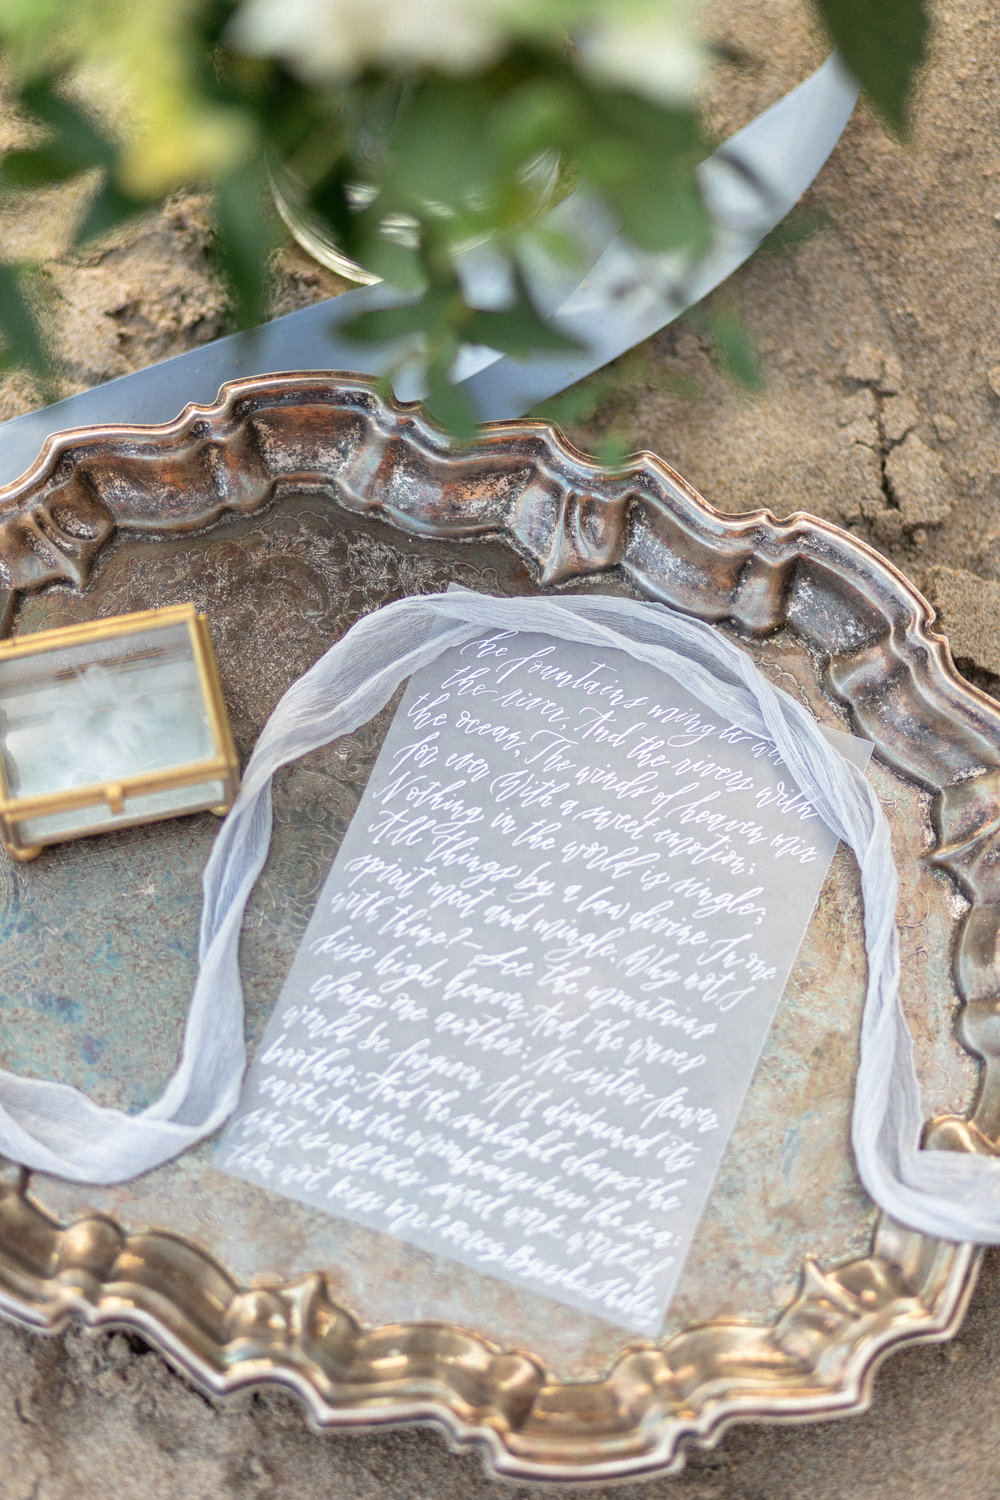 Ethereal fine art custom calligraphy wedding invitations by Caitlin O'Bryant Design. Photo by Ashley Marie Photography